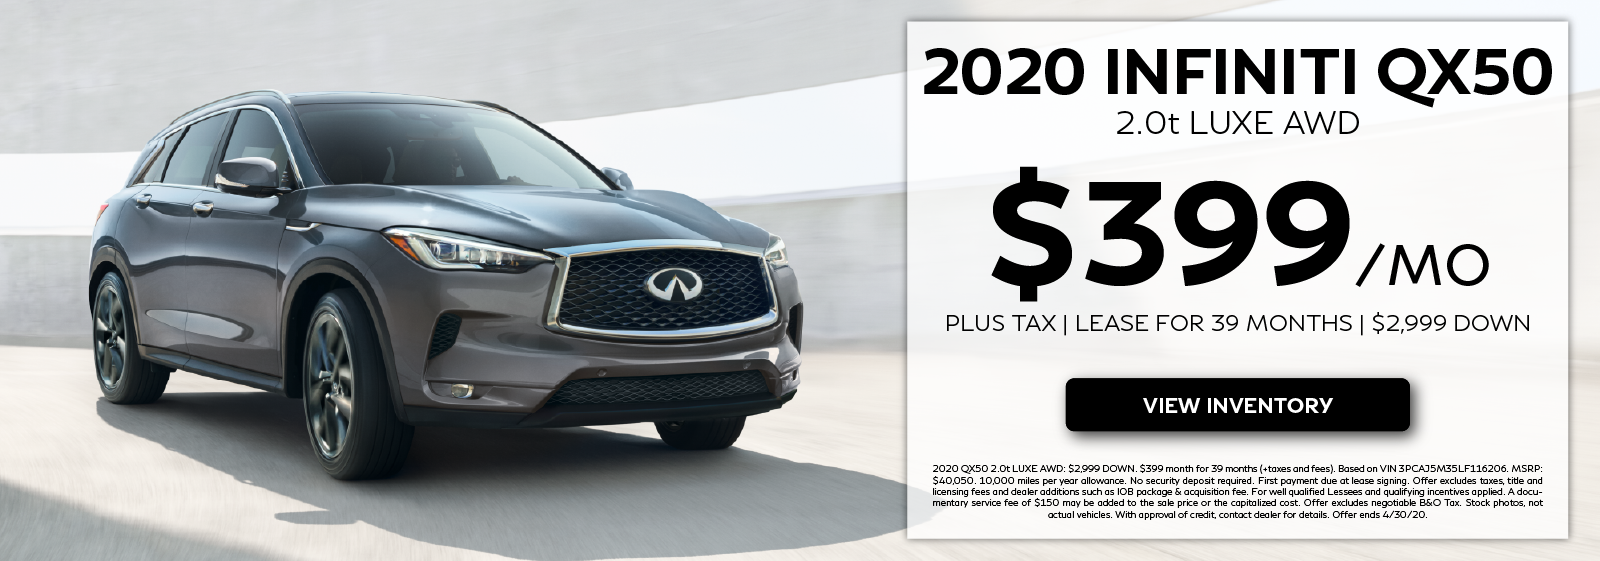 2020 QX50 2.0t LUXE AWD - Lease for $399 per month for 39 months. Click to view invntory.